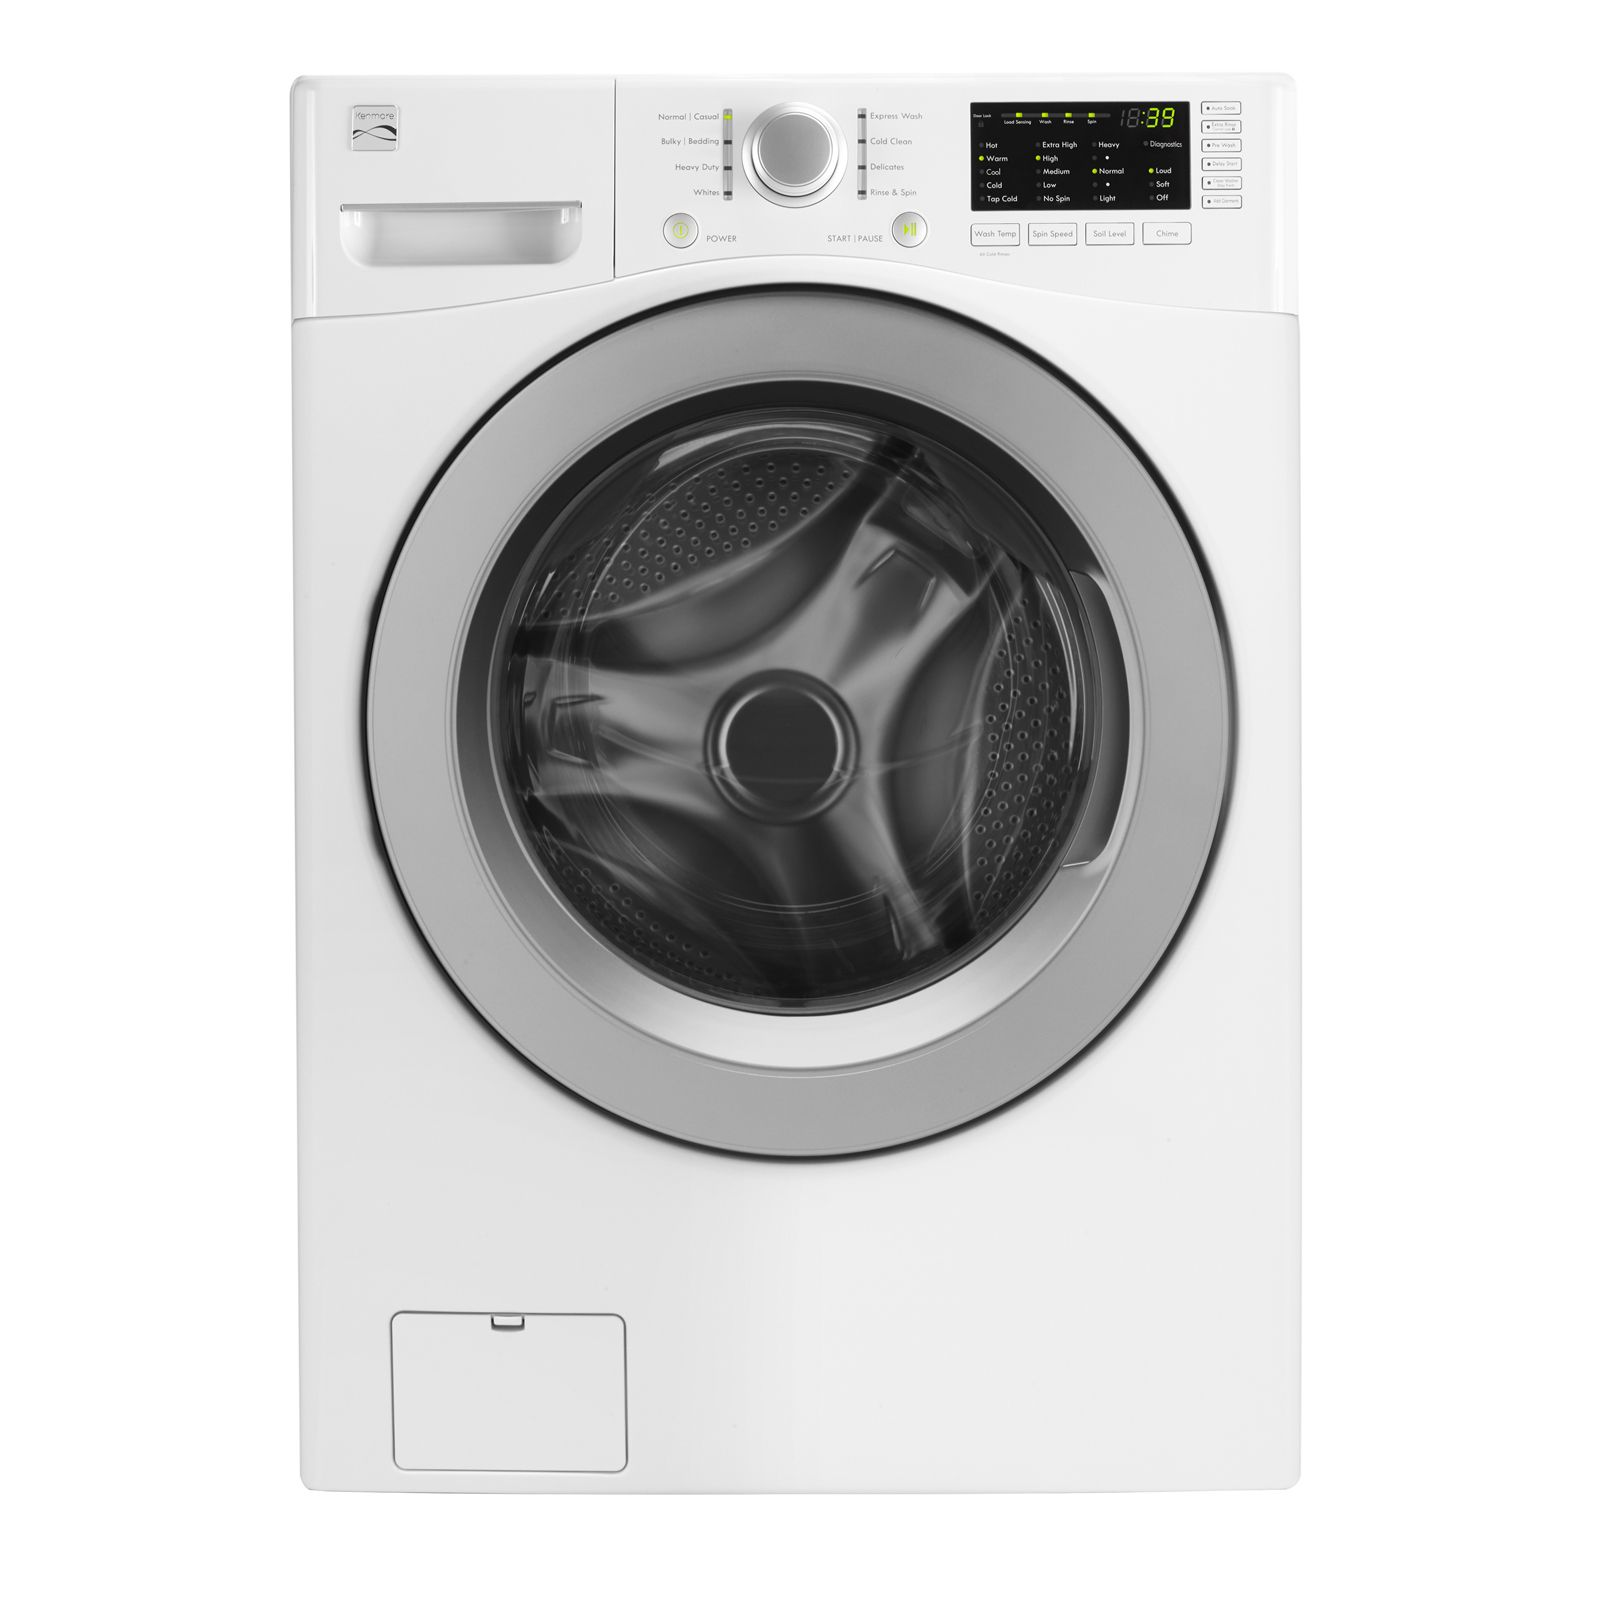 Kenmore 4 5 cu ft Front Load Washer Laundry Done the Right